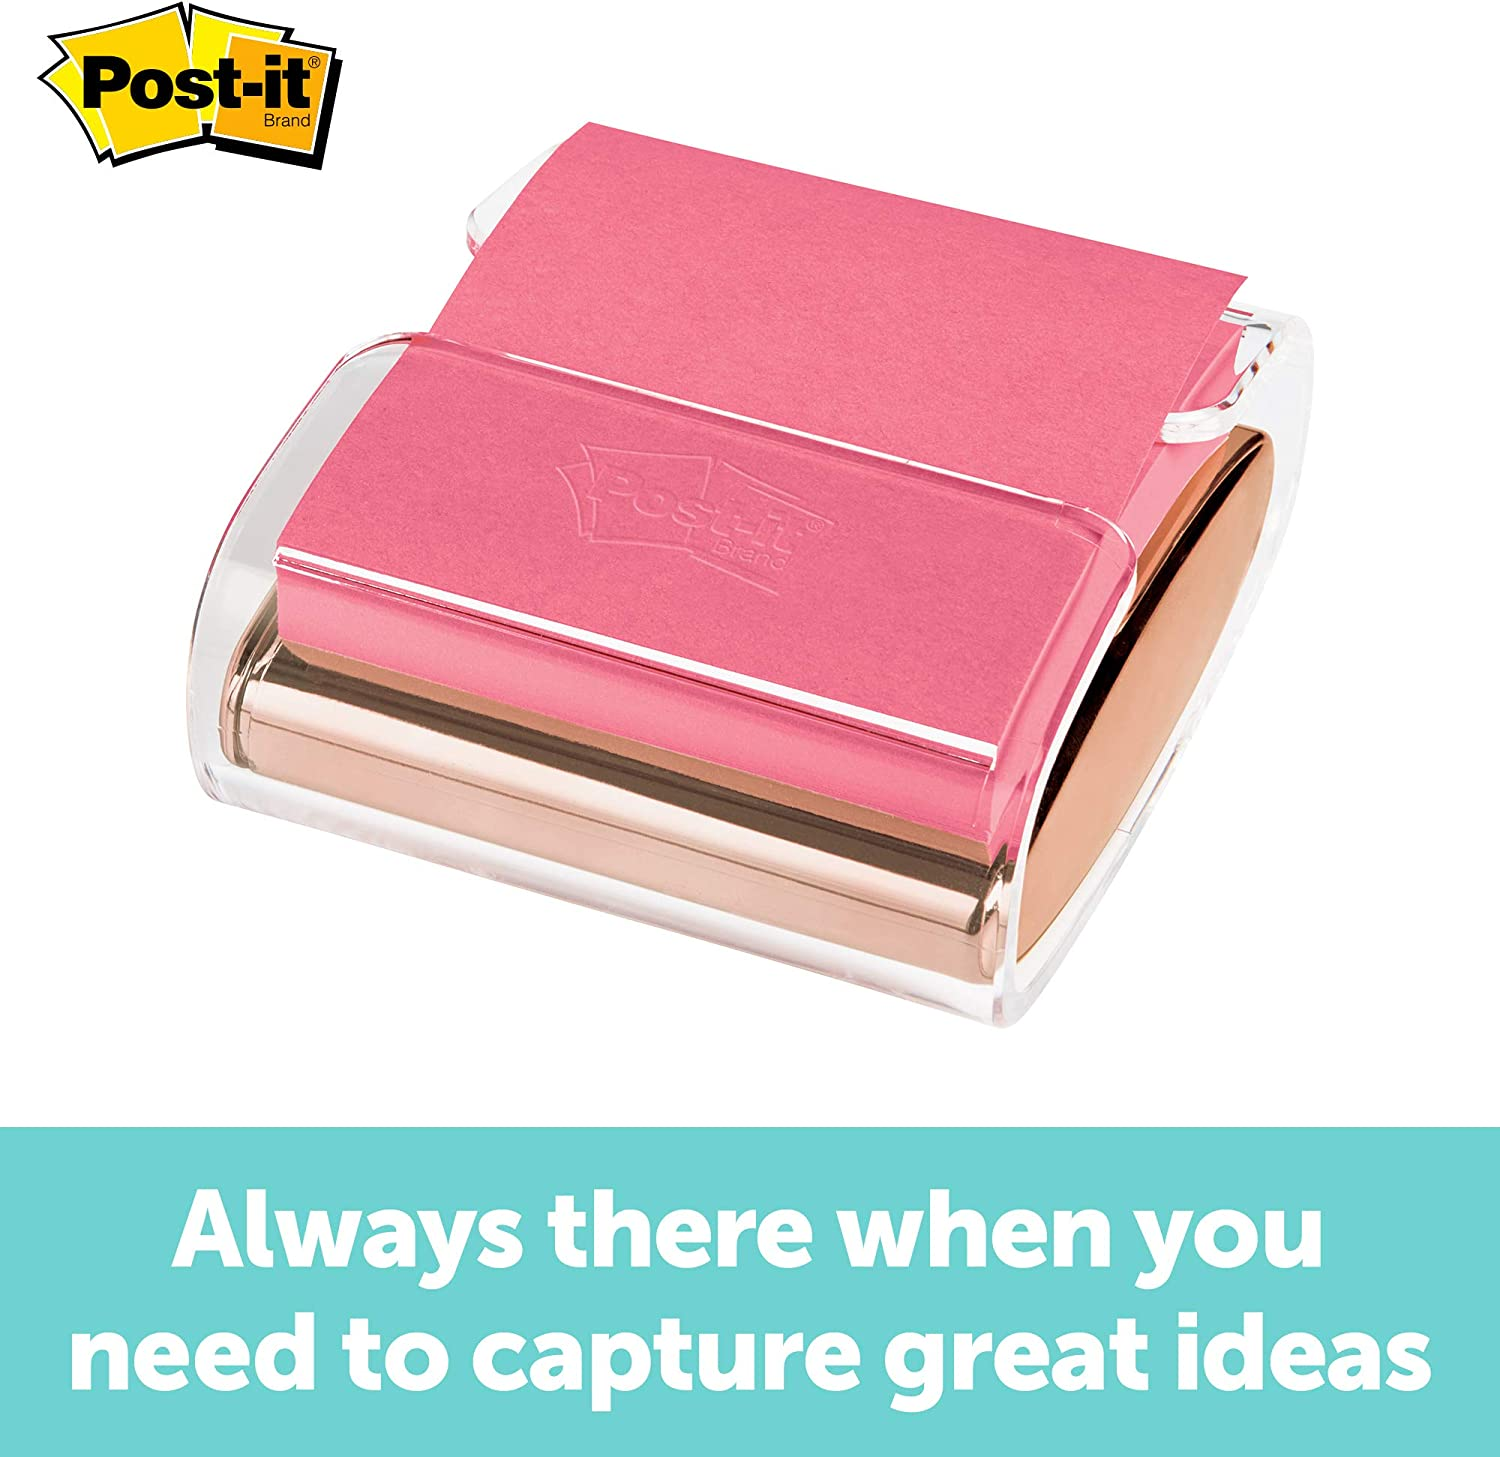 Post-it Pop-up Note Dispenser, Rose Gold, 3 in x 3 in, 1 Dispenser/Pack (WD-330-RG)